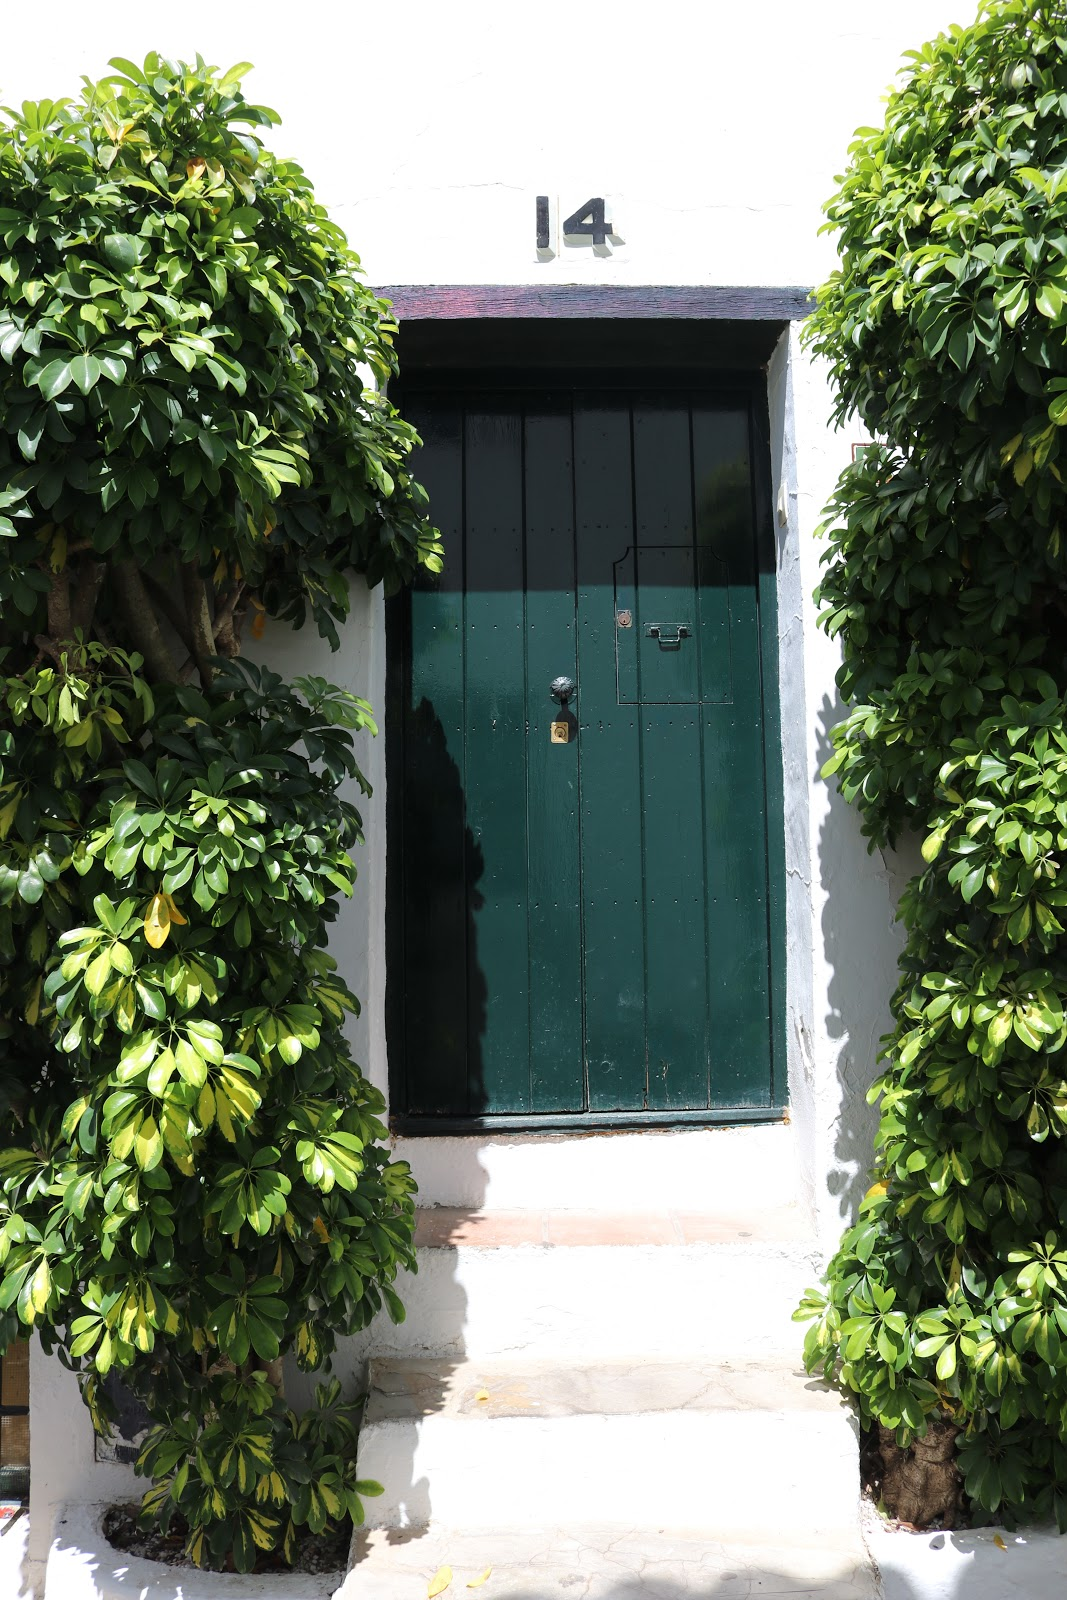 Green Door against white walls in Castillo de Castellar, Spain